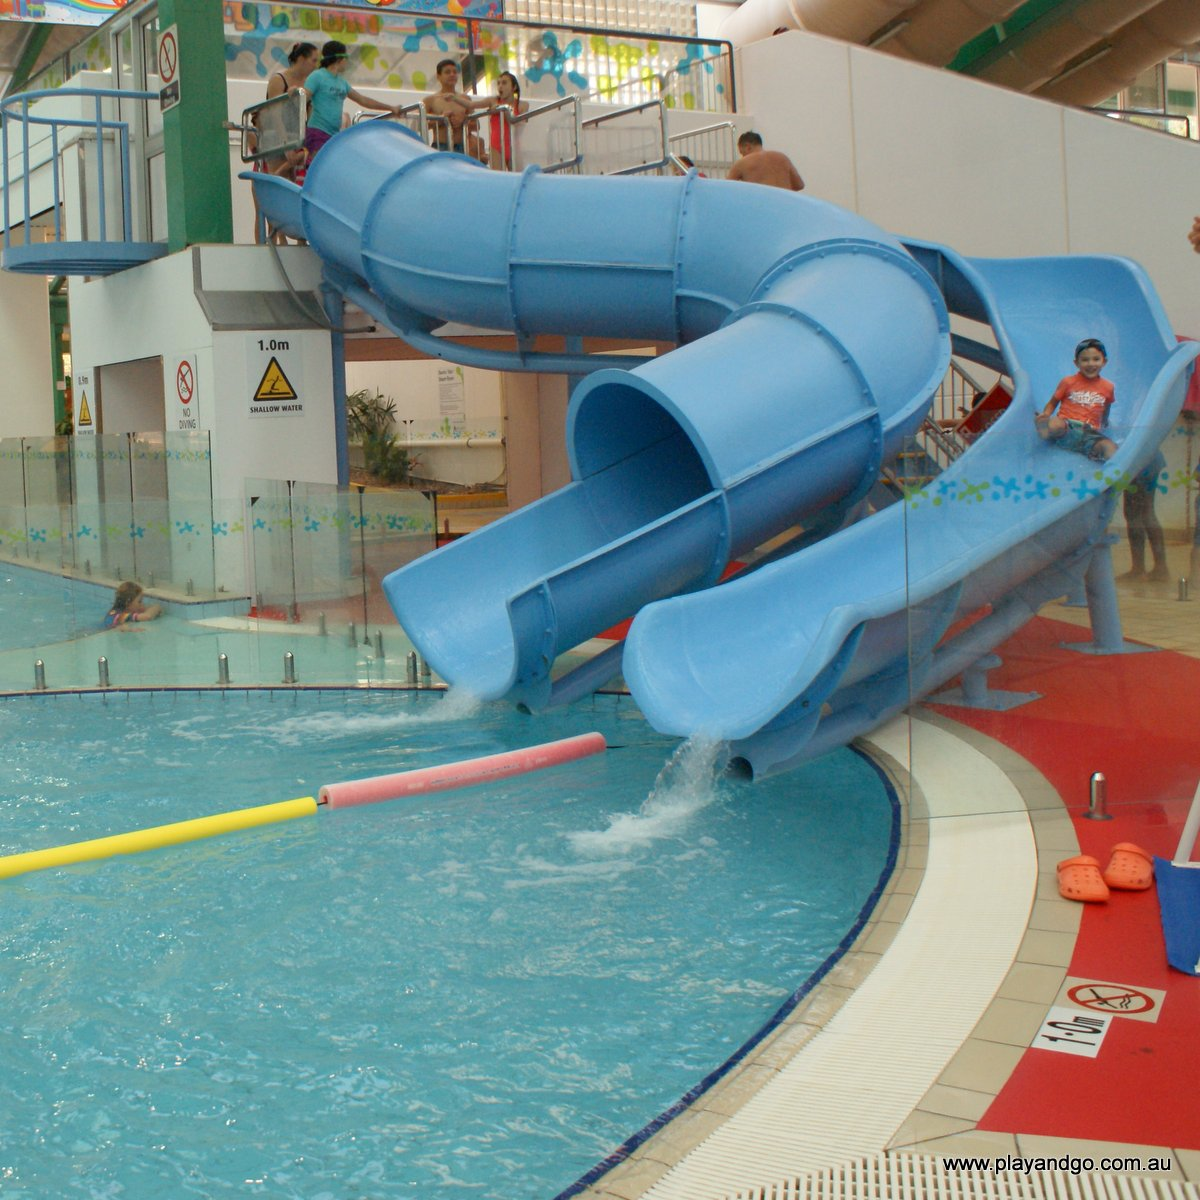 Adelaide aquatic centre north adelaide a look at the - Swimming pools with slides north west ...